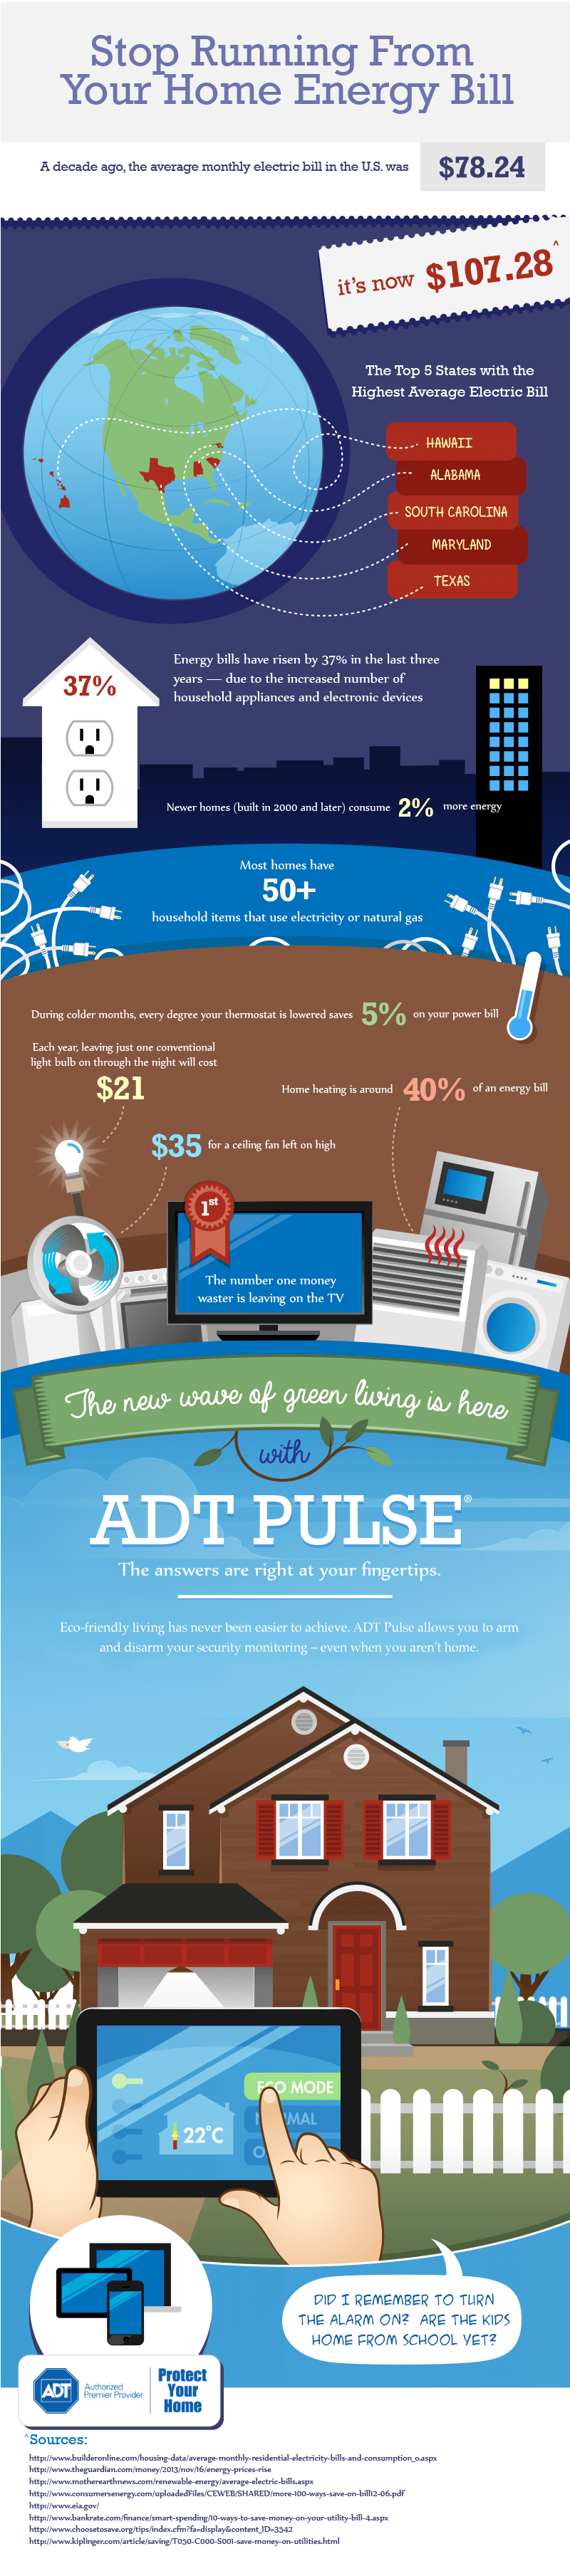 ADT-Pulse-Infographic